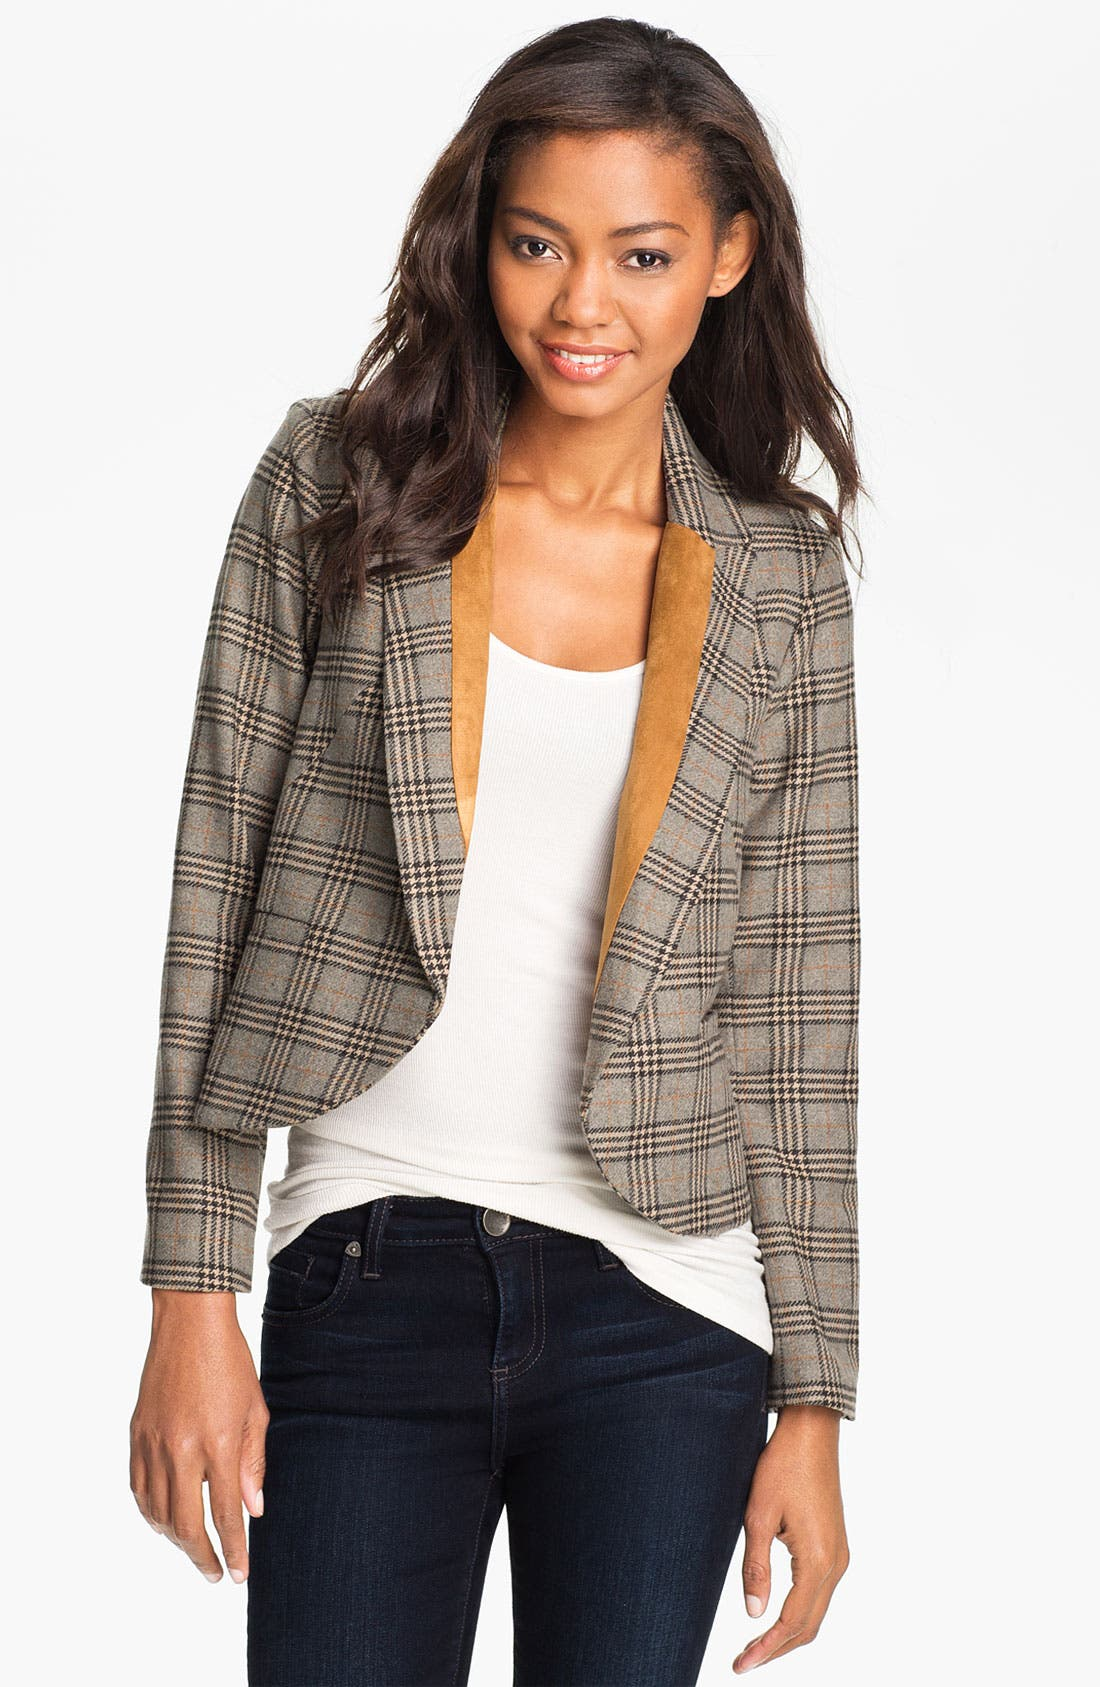 Main Image - Max & Mia Plaid Jacket